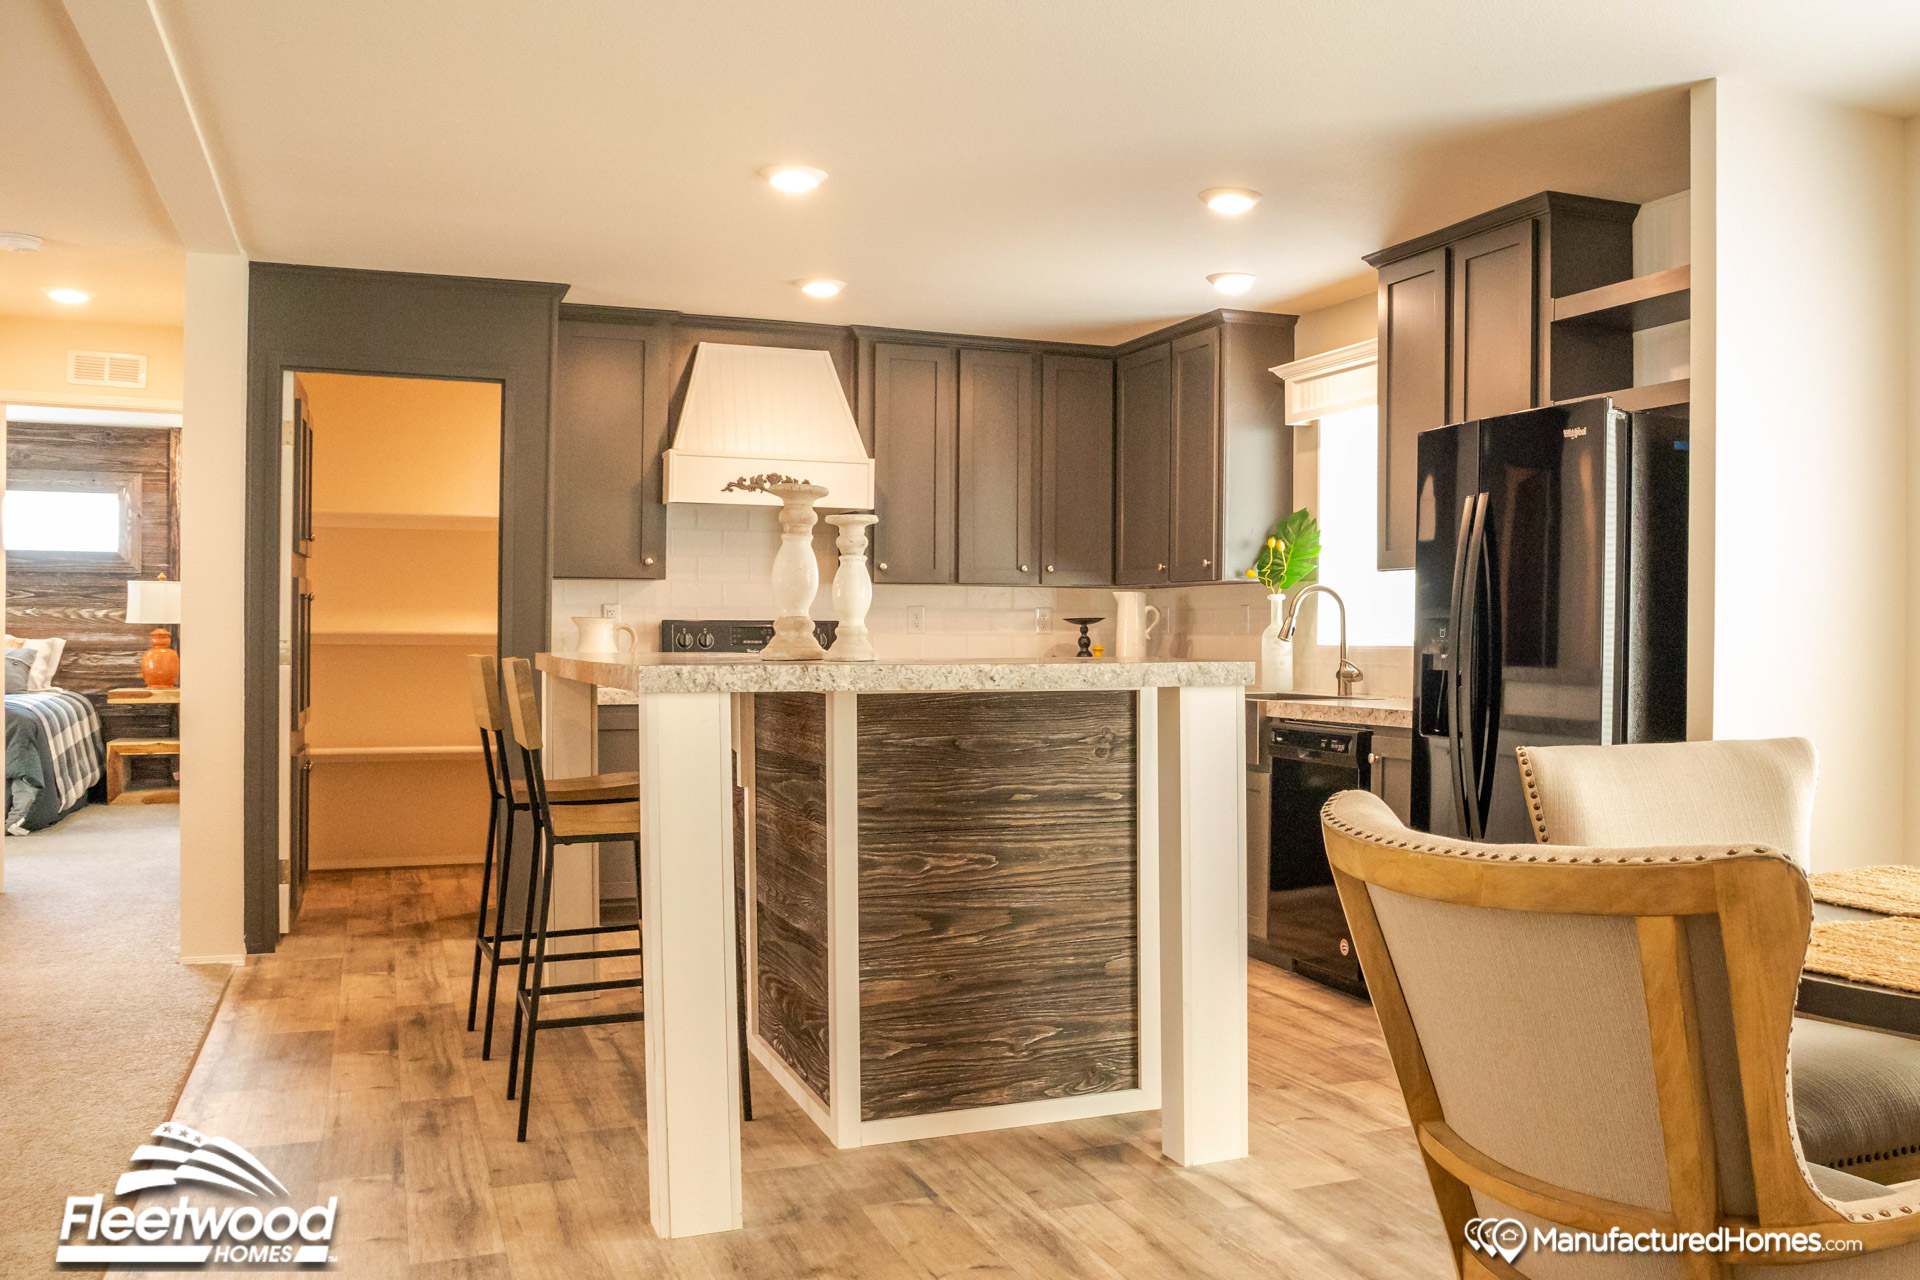 Broadmore 28764T The Sawtooth by Fleetwood Homes of Nampa on mini mini homes and cabins, mini gutters for mobile home, mini mobile cabins, weston extreme model 14662 by fleetwood,